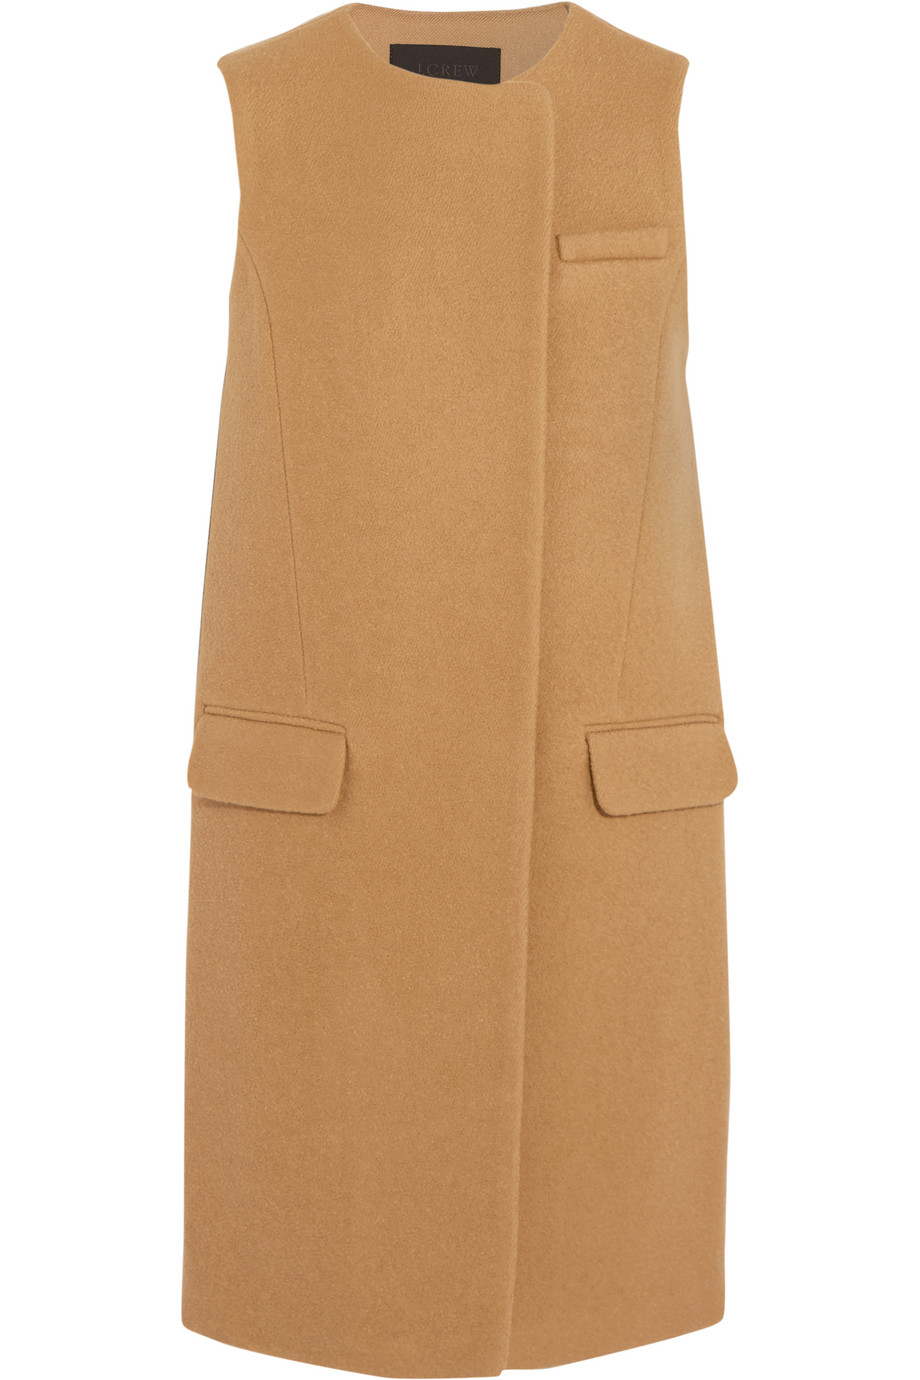 J.Crew Collection Cora Boiled Wool Gilet, Camel, Women's, Size: 14